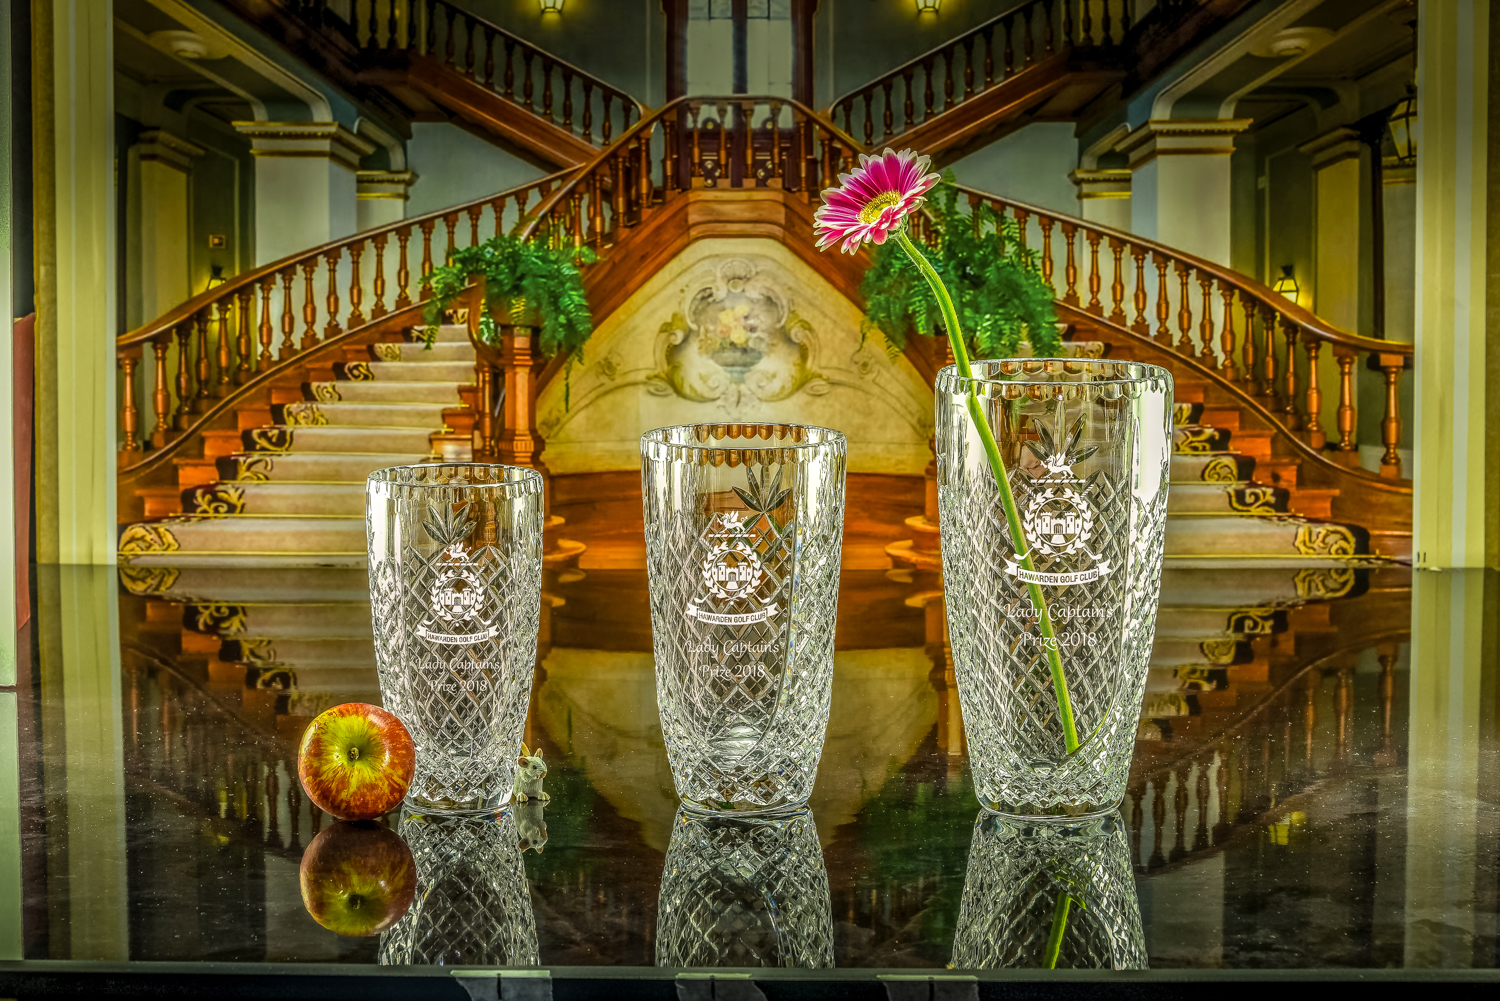 Majestic Crystal 2019 Brochure photos Latin Vases SML - ABC_4237-9